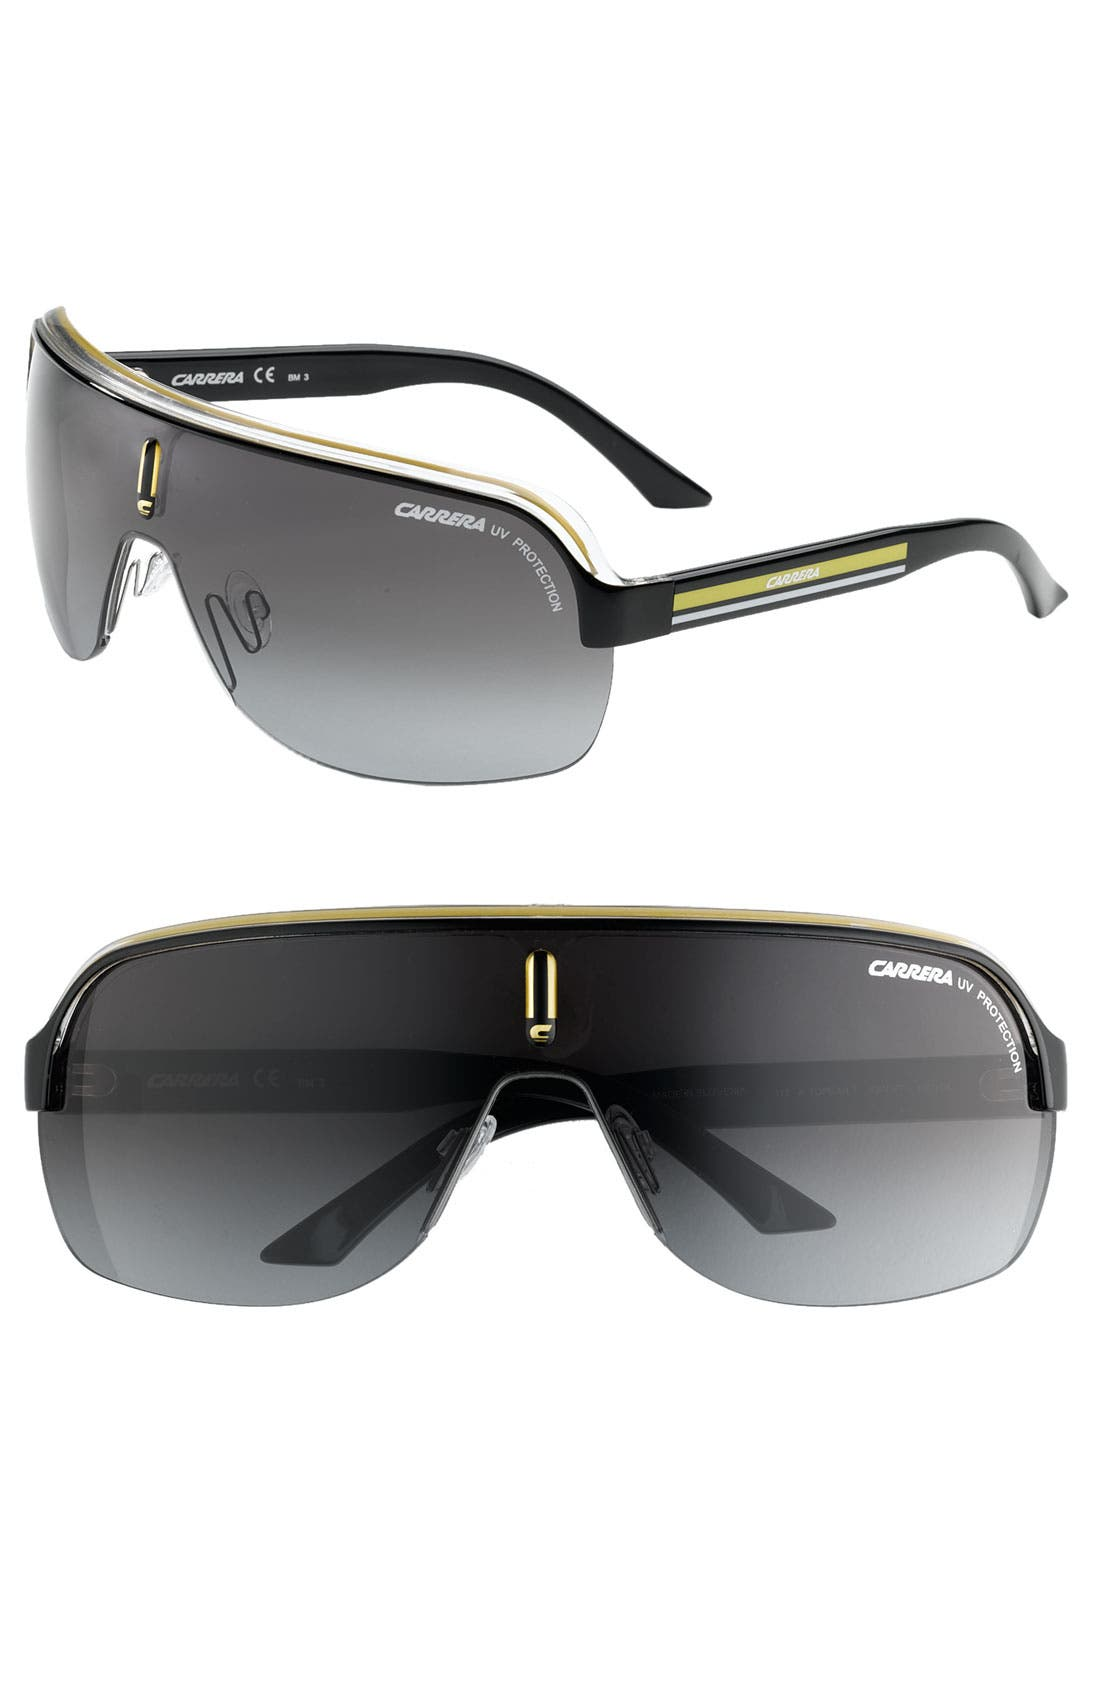 Main Image - Carrera Eyewear 99mm Shield Sunglasses